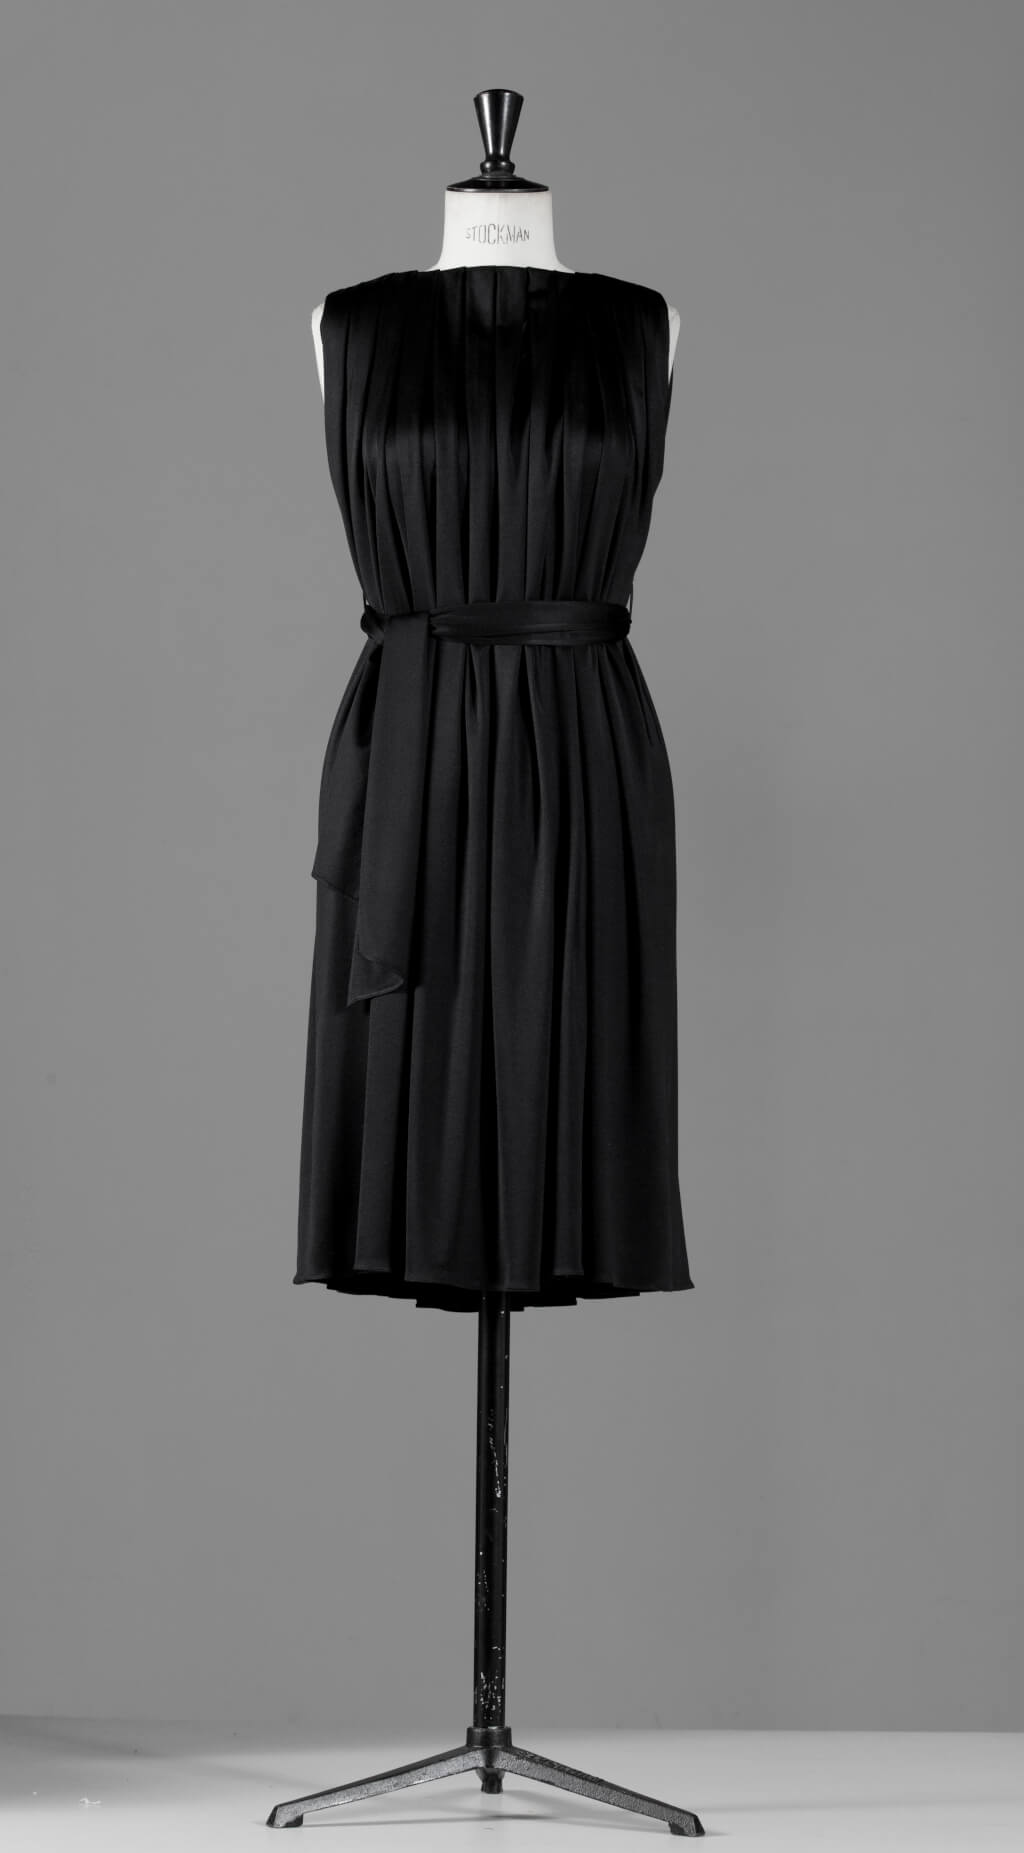 anna_ruohonen_black_classic_collection_cleopatra-dress_since_2012_cleopatra_photo_victor_matussiere